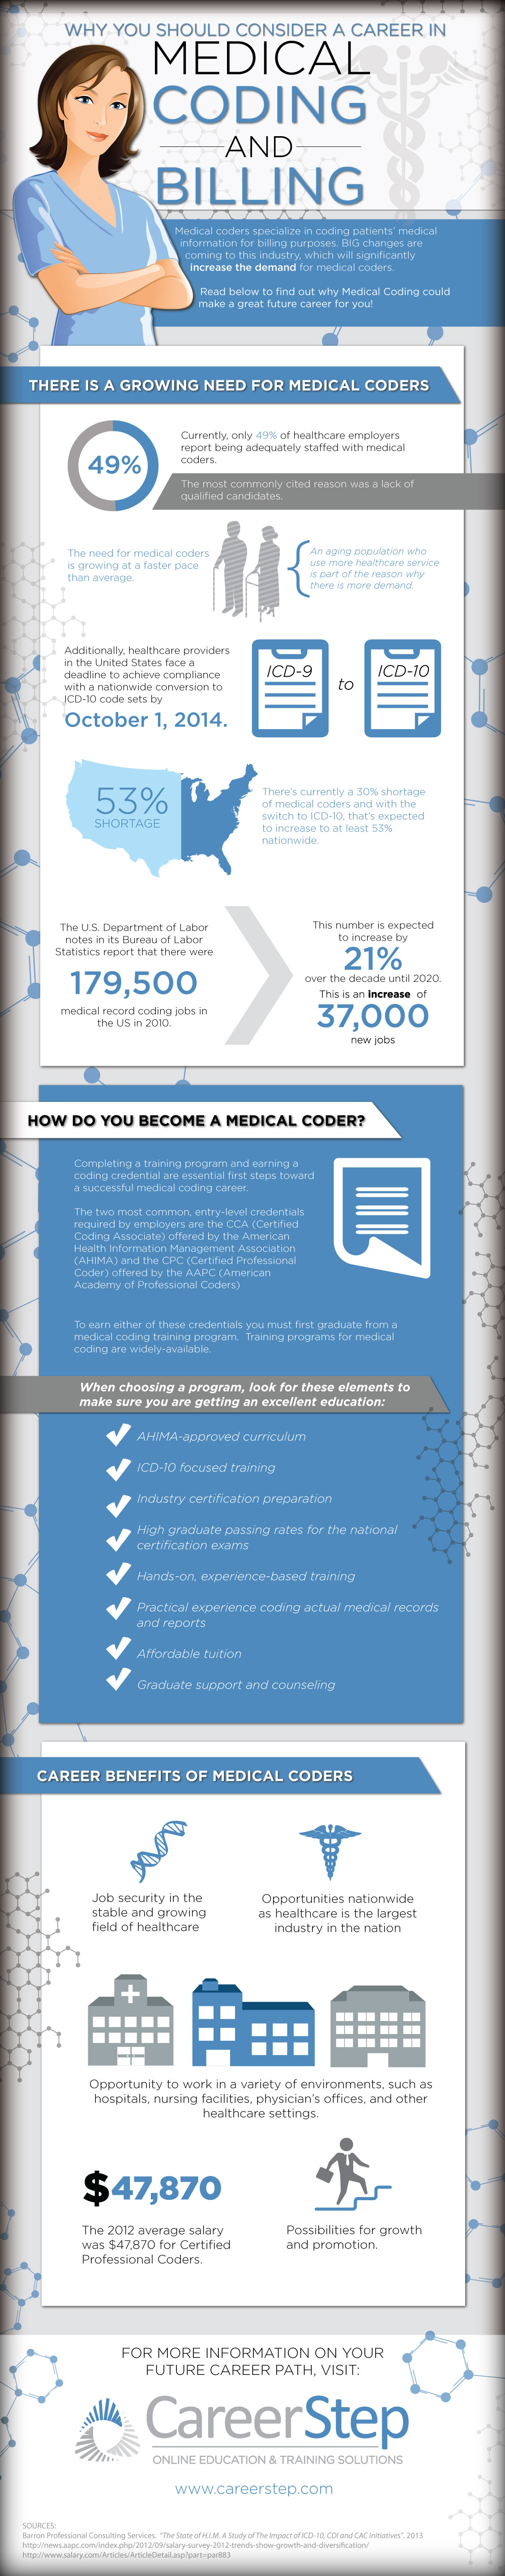 Medical Coding Billing